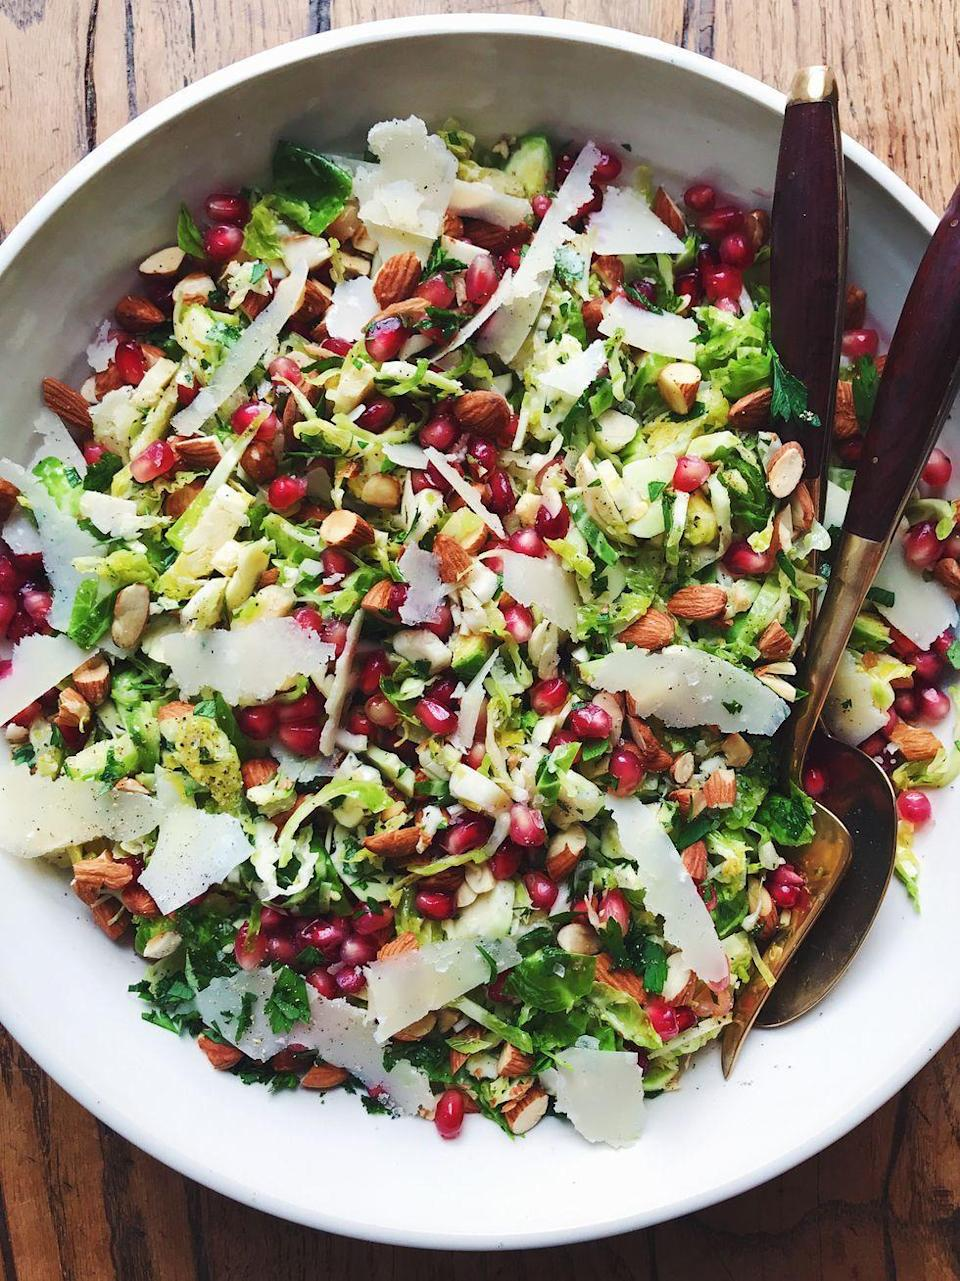 "<p>If you love Brussels sprouts but want to try them in a completely new way, this salad recipe is for you. With an array of textures, thanks to a combination of nuts, parmesan cheese, and raw sprouts, you'll want to make this salad every day of the week. </p><p><strong><em>Get the recipe at <a href=""https://www.delish.com/cooking/recipe-ideas/a21085670/brussels-sprouts-salad-recipe/"" rel=""nofollow noopener"" target=""_blank"" data-ylk=""slk:Delish"" class=""link rapid-noclick-resp"">Delish</a>. </em></strong></p><p><strong><a class=""link rapid-noclick-resp"" href=""https://www.pamperedchef.com/shop/Entertaining/Serveware/Salad+Claws/100191"" rel=""nofollow noopener"" target=""_blank"" data-ylk=""slk:SHOP SALAD CLAWS"">SHOP SALAD CLAWS</a></strong></p>"